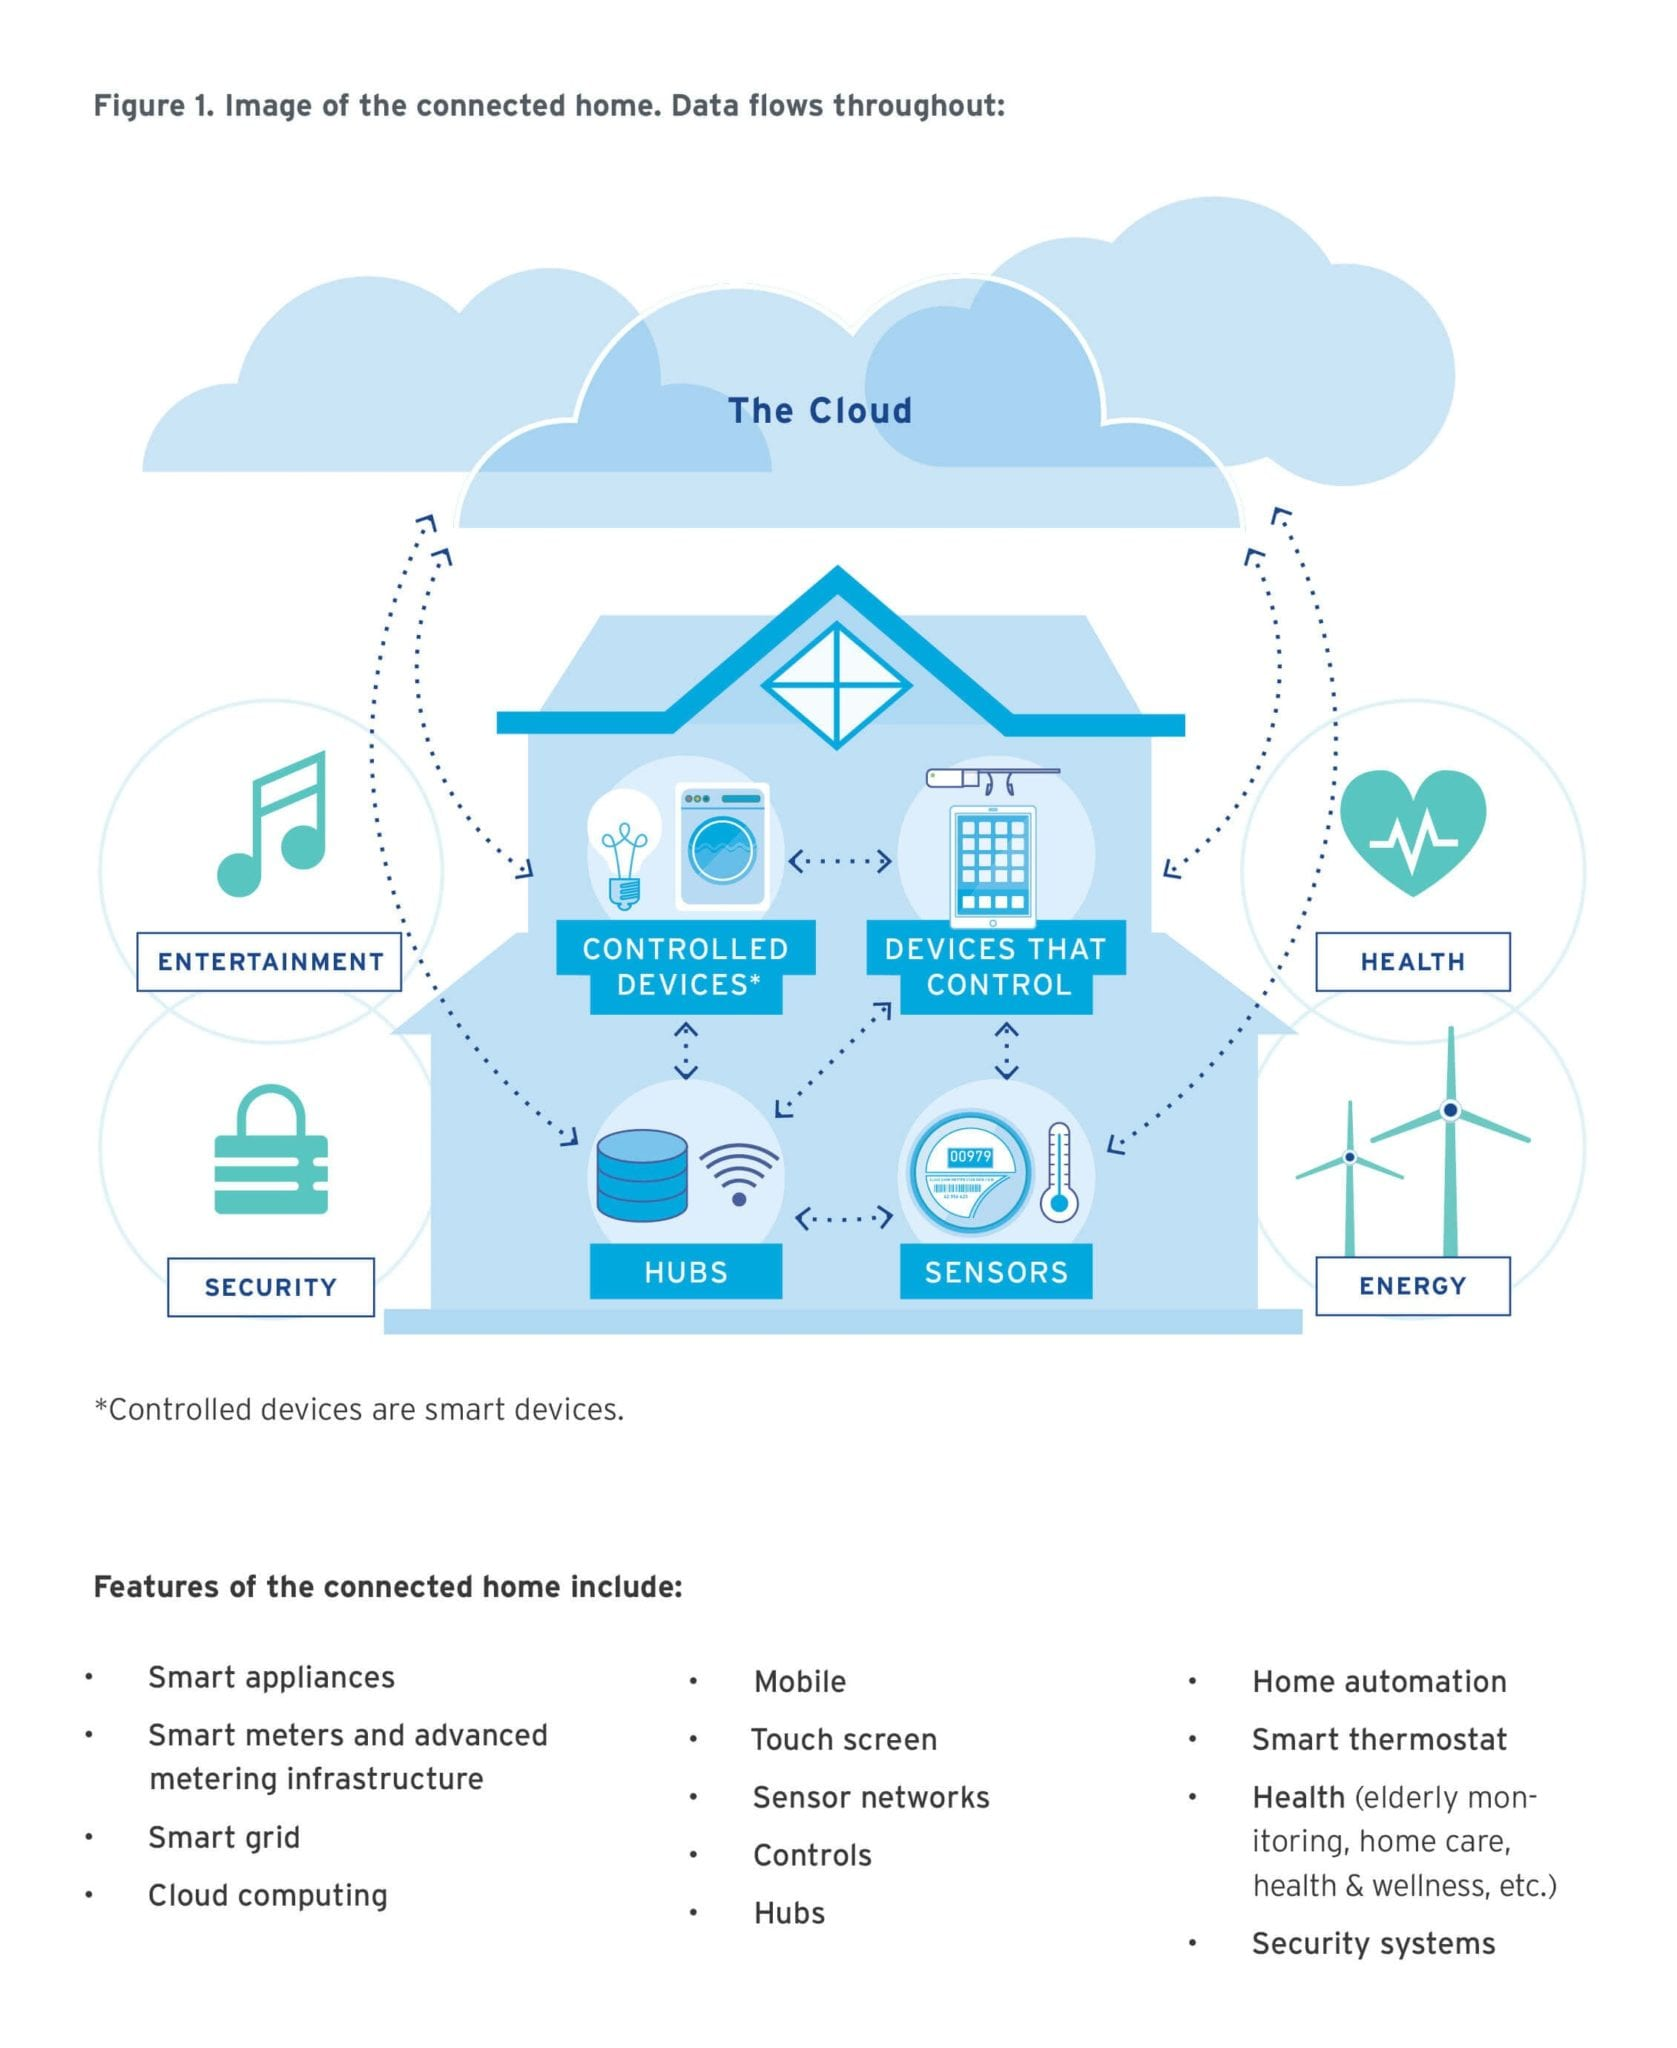 Connected Home: Smart automation enables home energy management